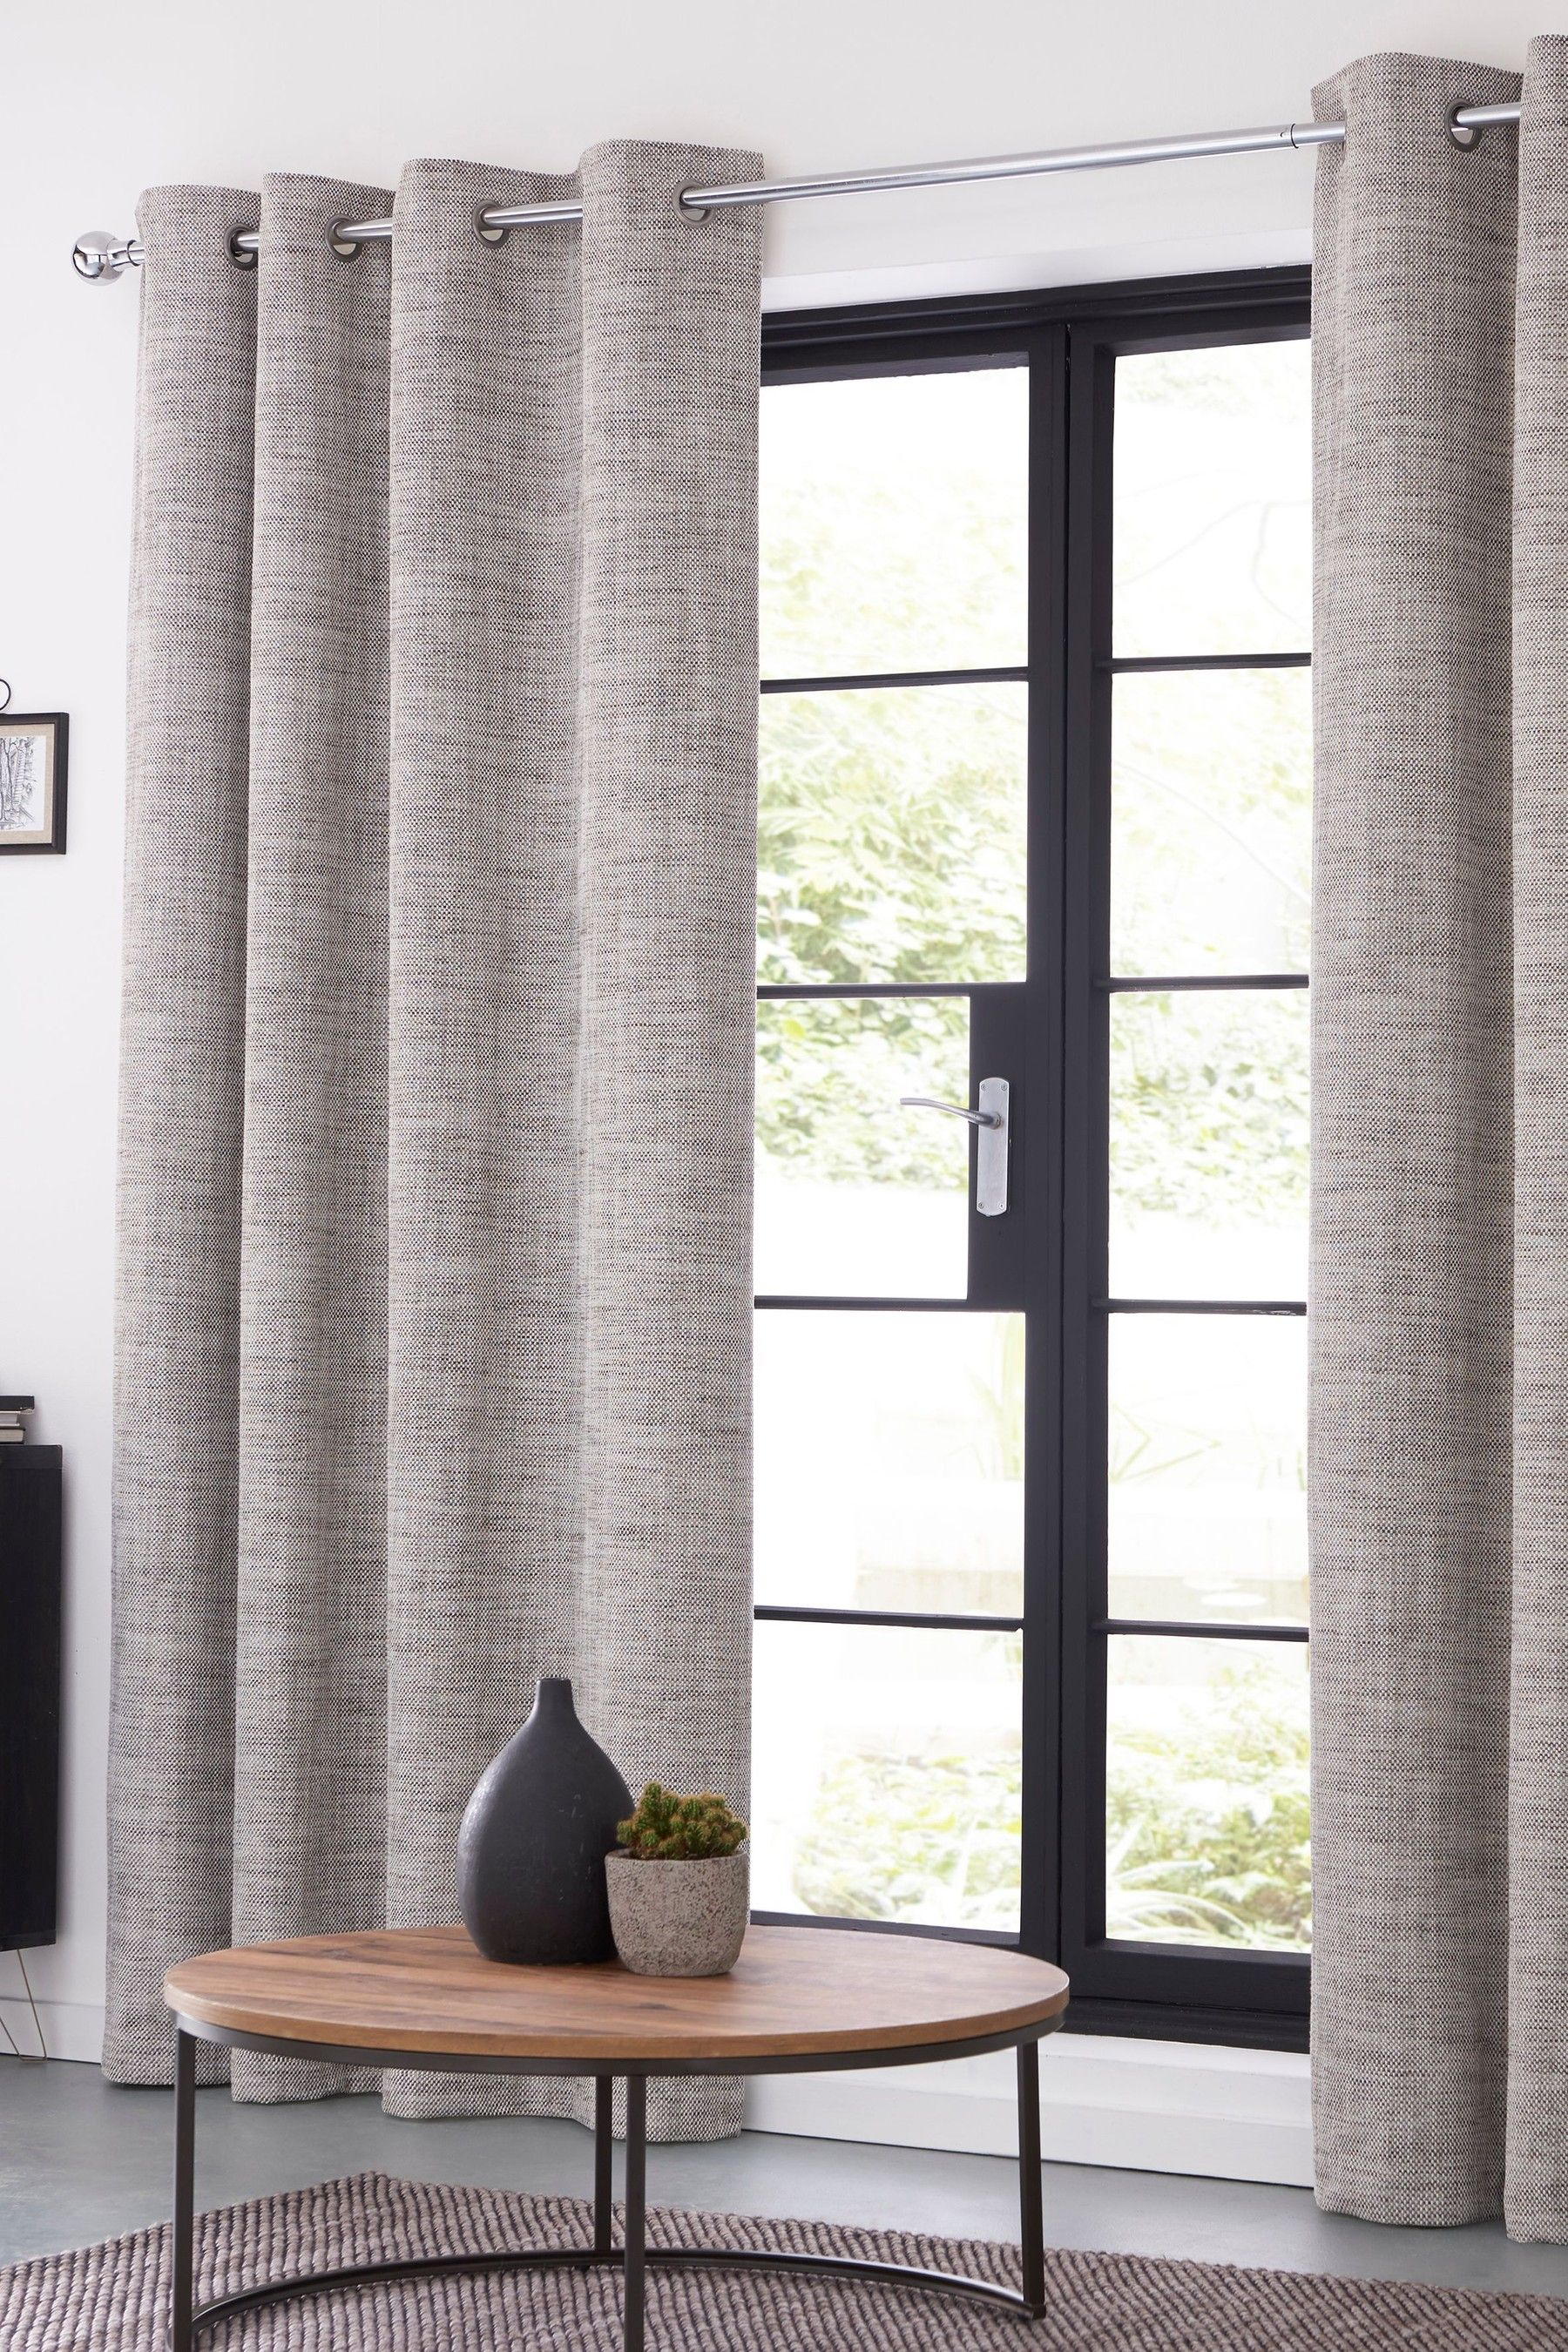 Next Tweedy Twist Eyelet Curtains Brown Curtains Living Room French Curtains Brown And Cream Living Room